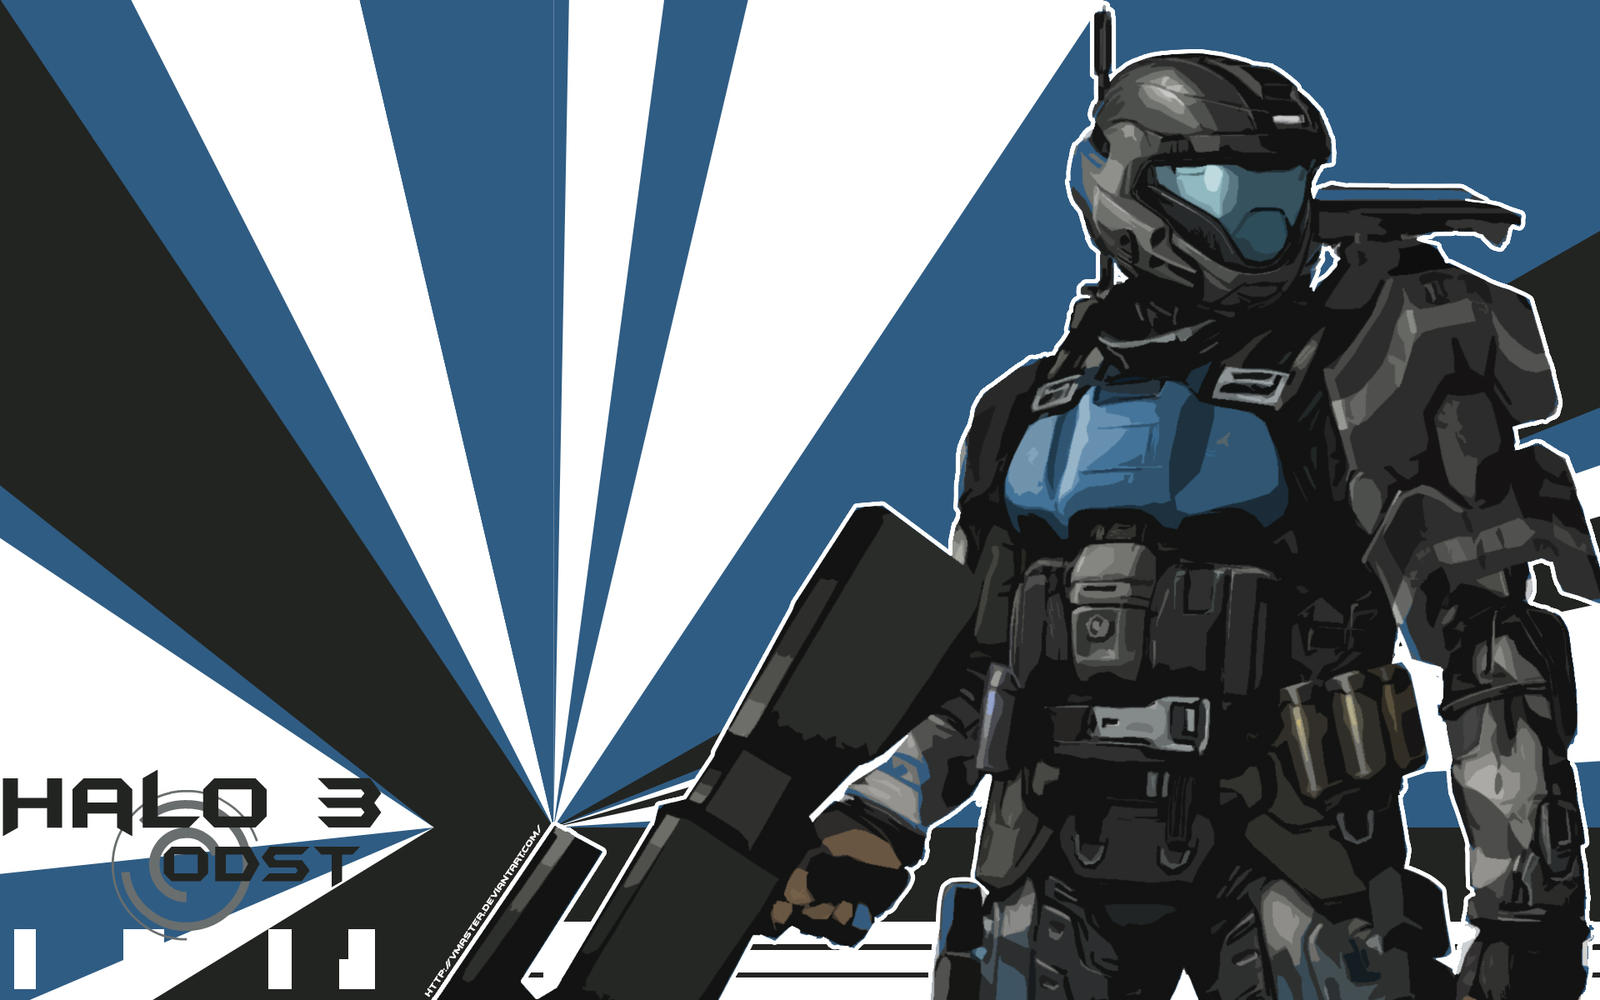 Halo 3 ODST Fan Art by Geocross on DeviantArt